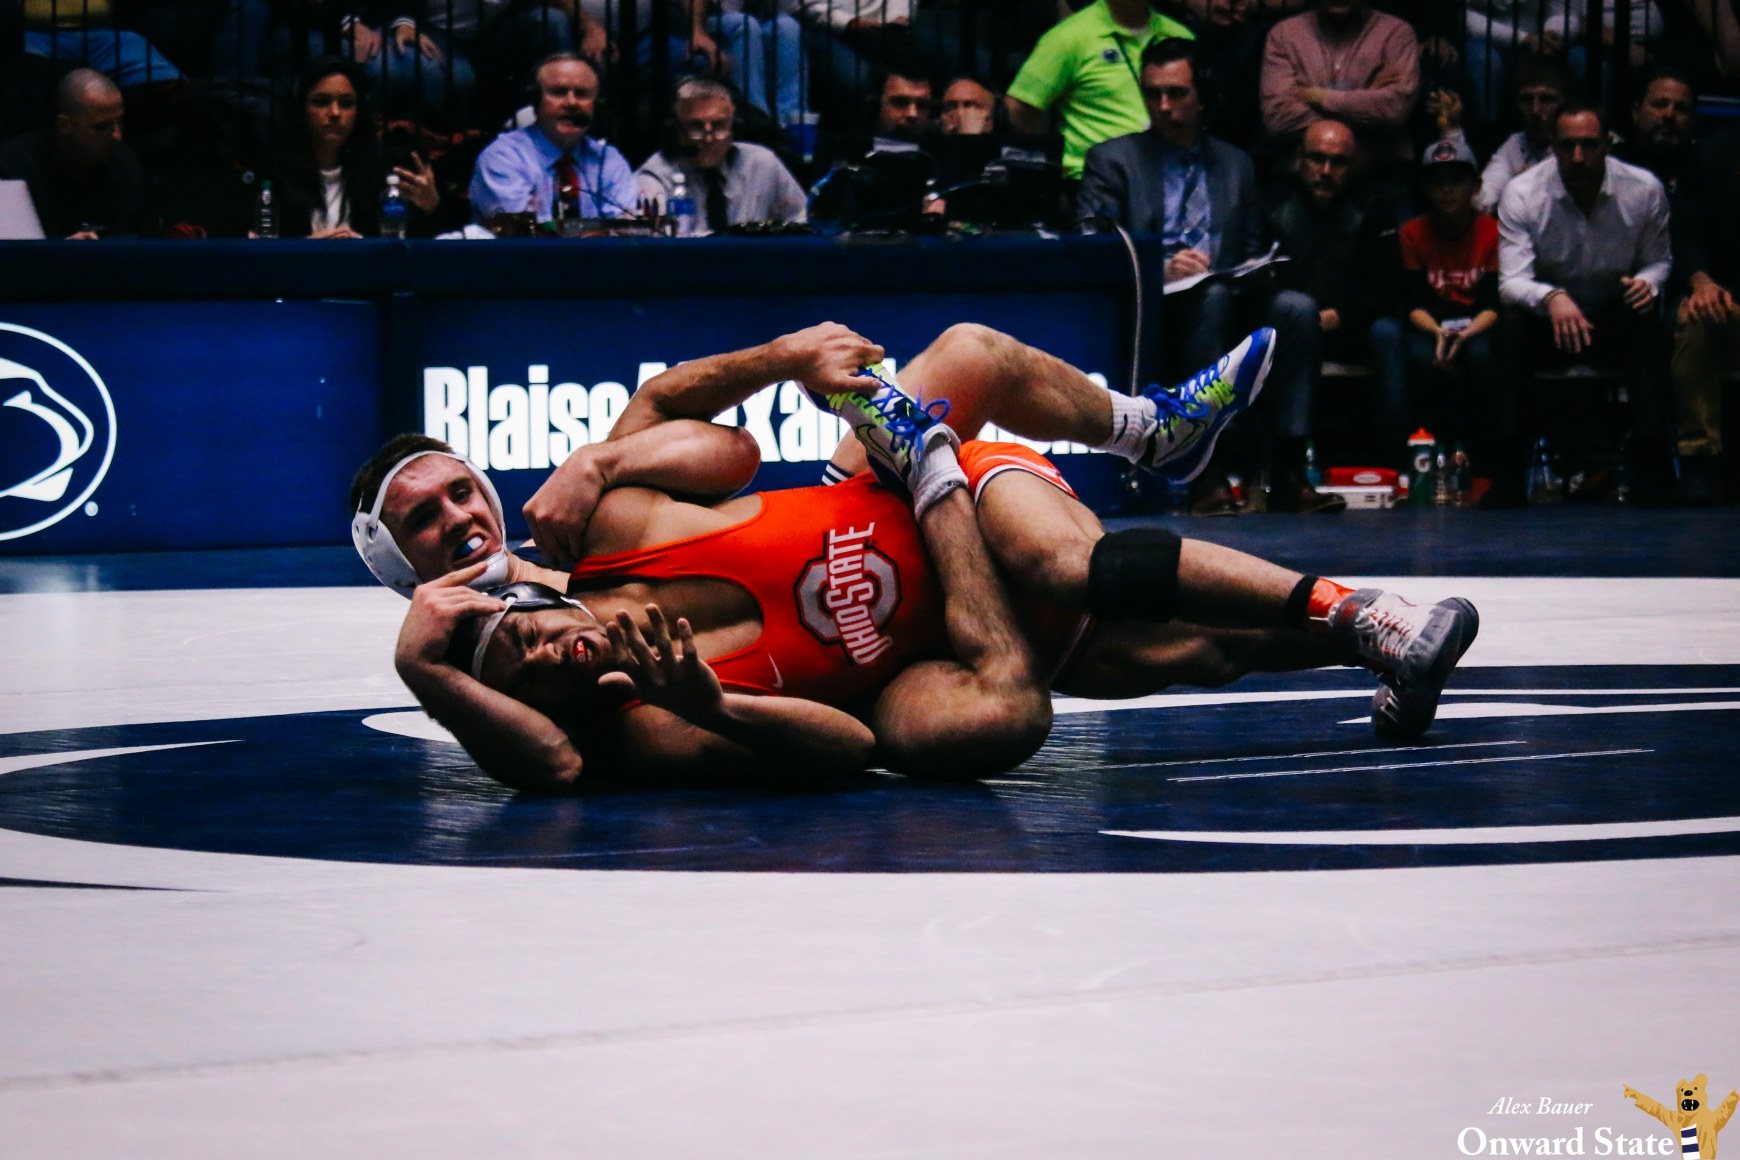 Zain Retherford finishes Penn State wrestling career with 3rd title